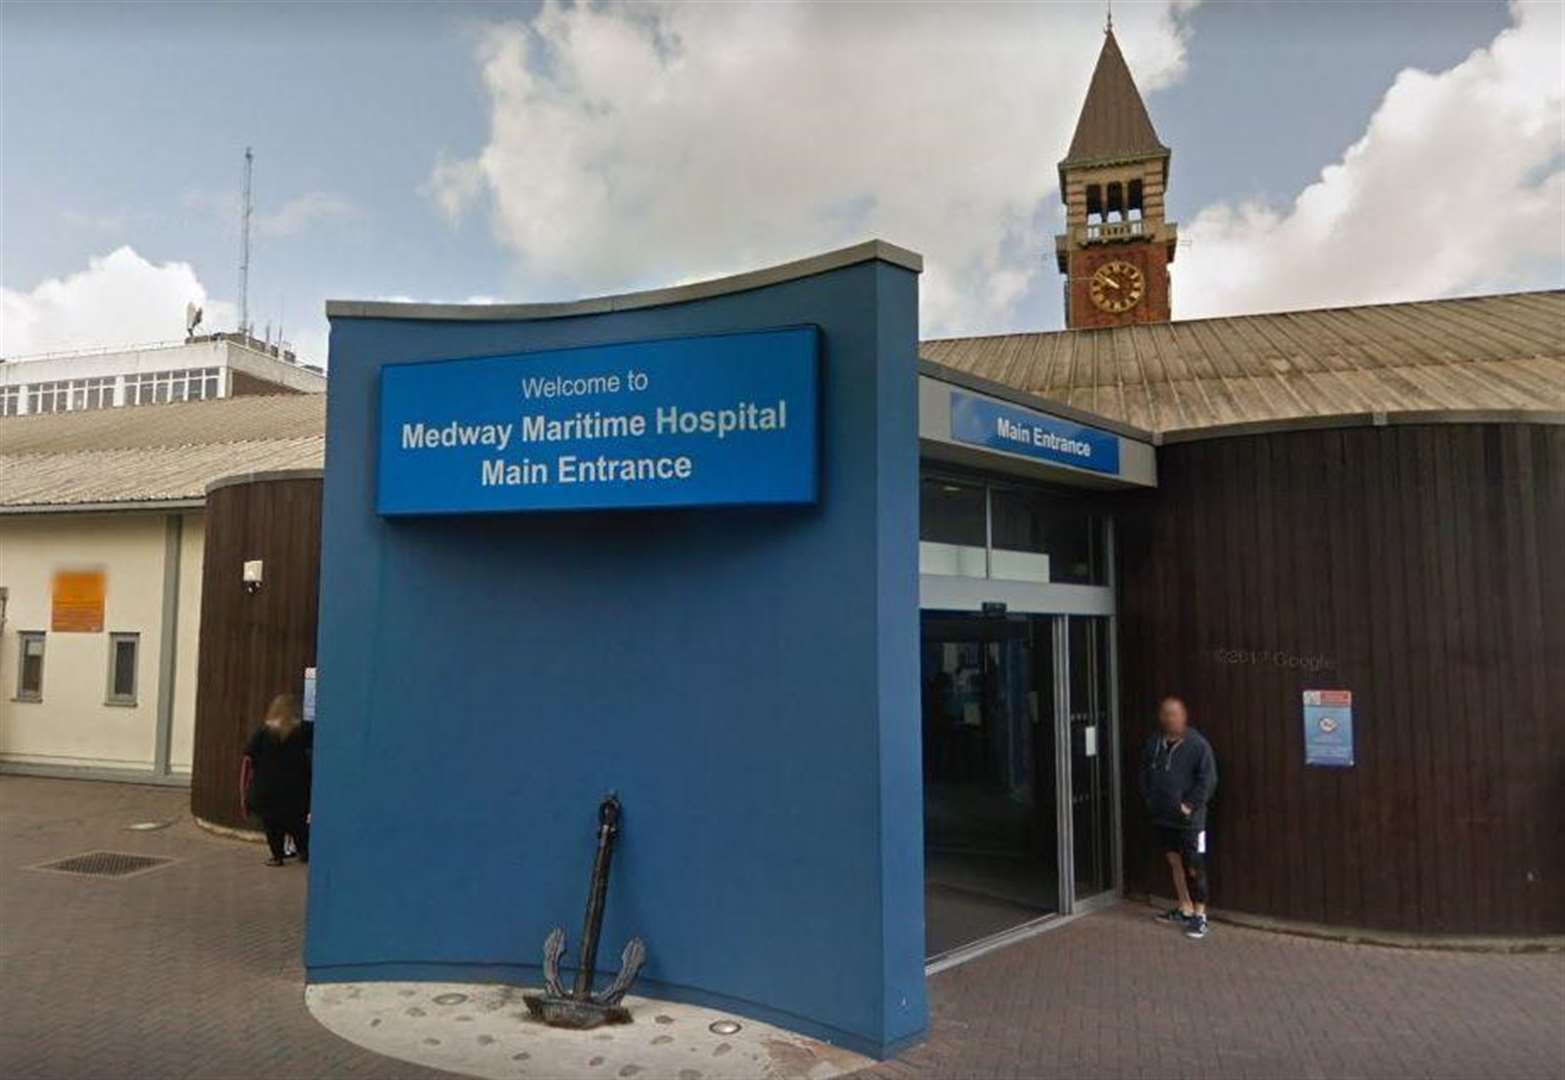 MPs' legal threat over stroke unit plans